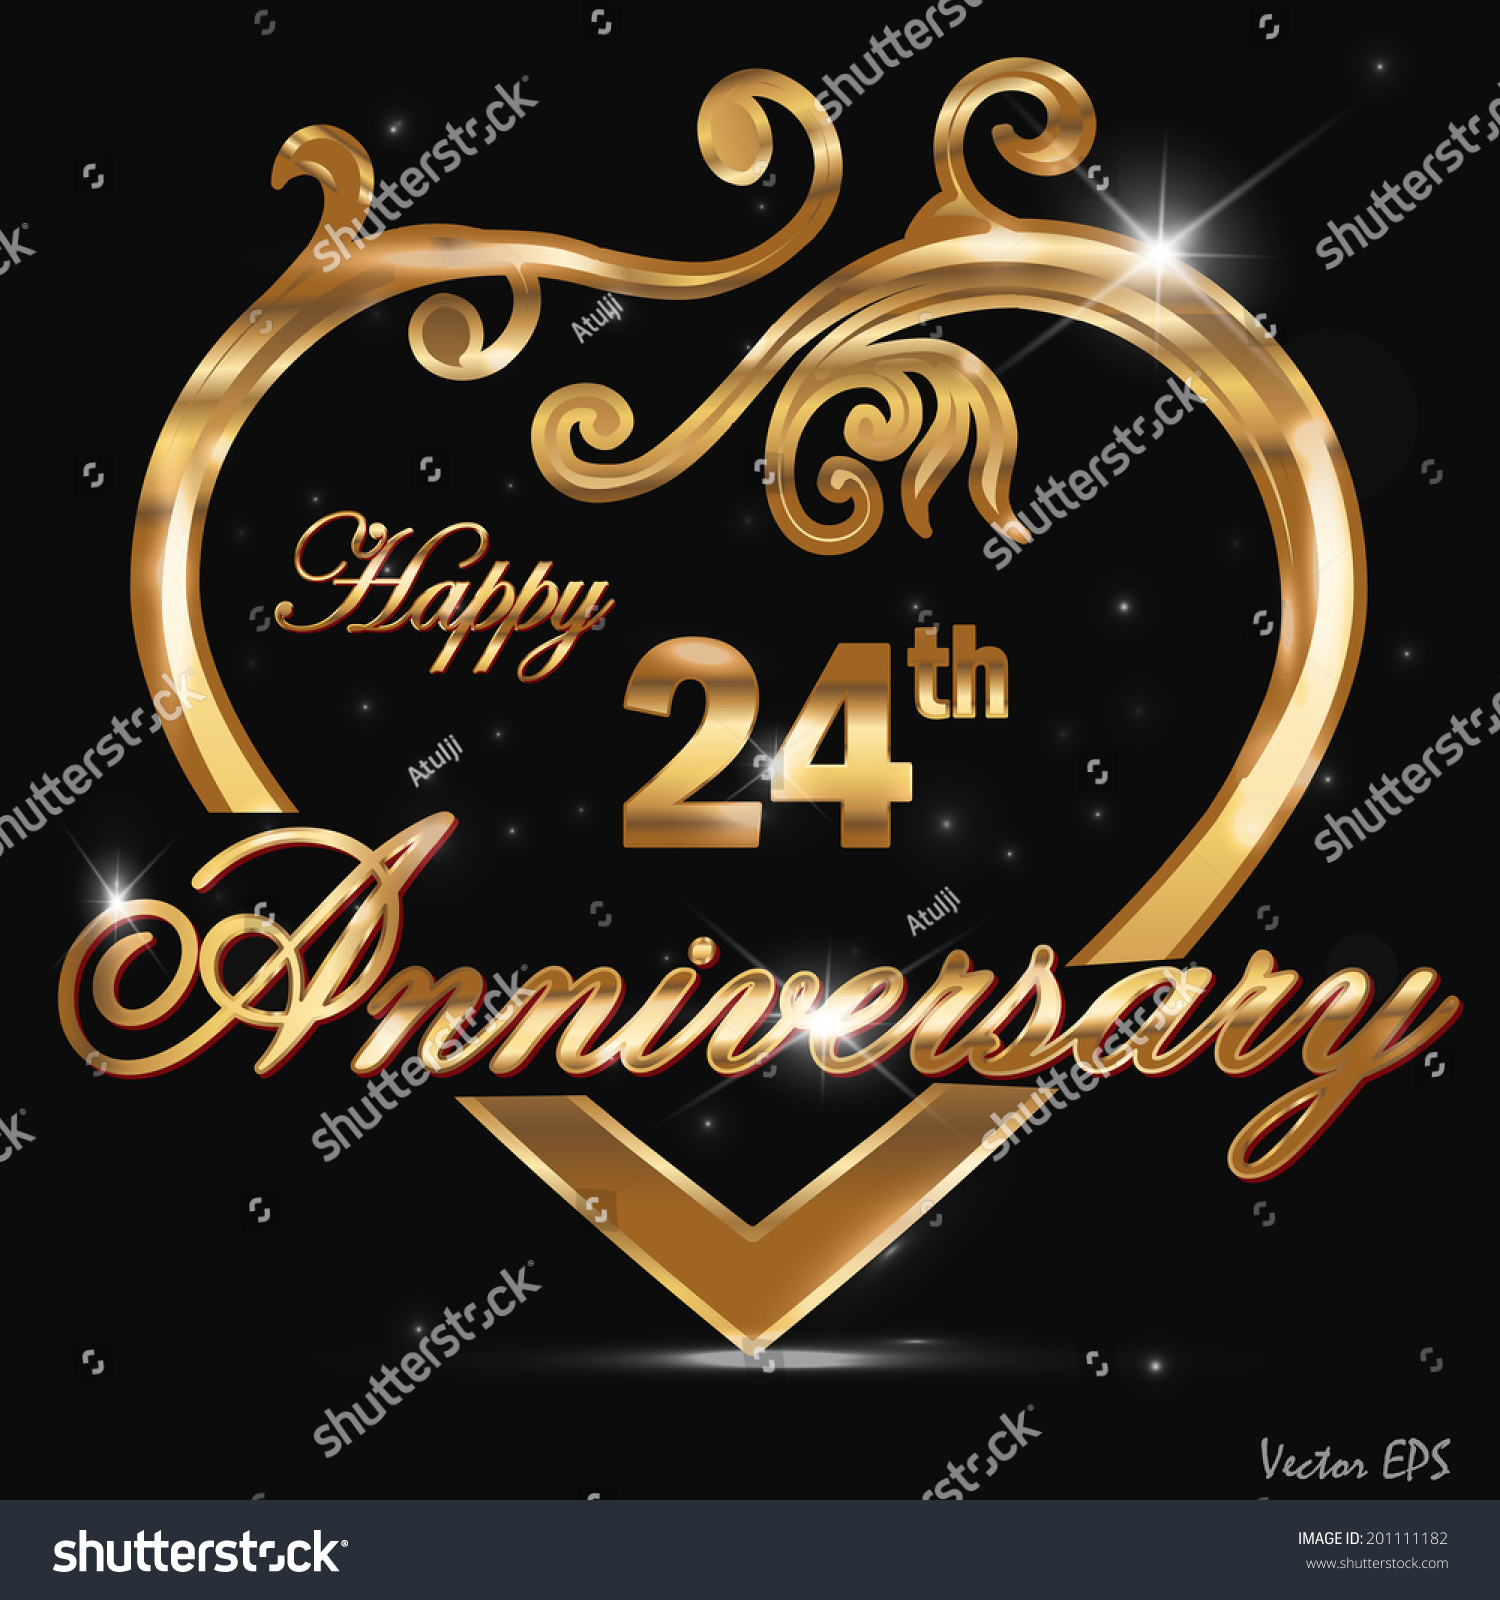 24 Year Anniversary Golden Label 24th Royalty Free Stock Vector 201111182 Avopix Com